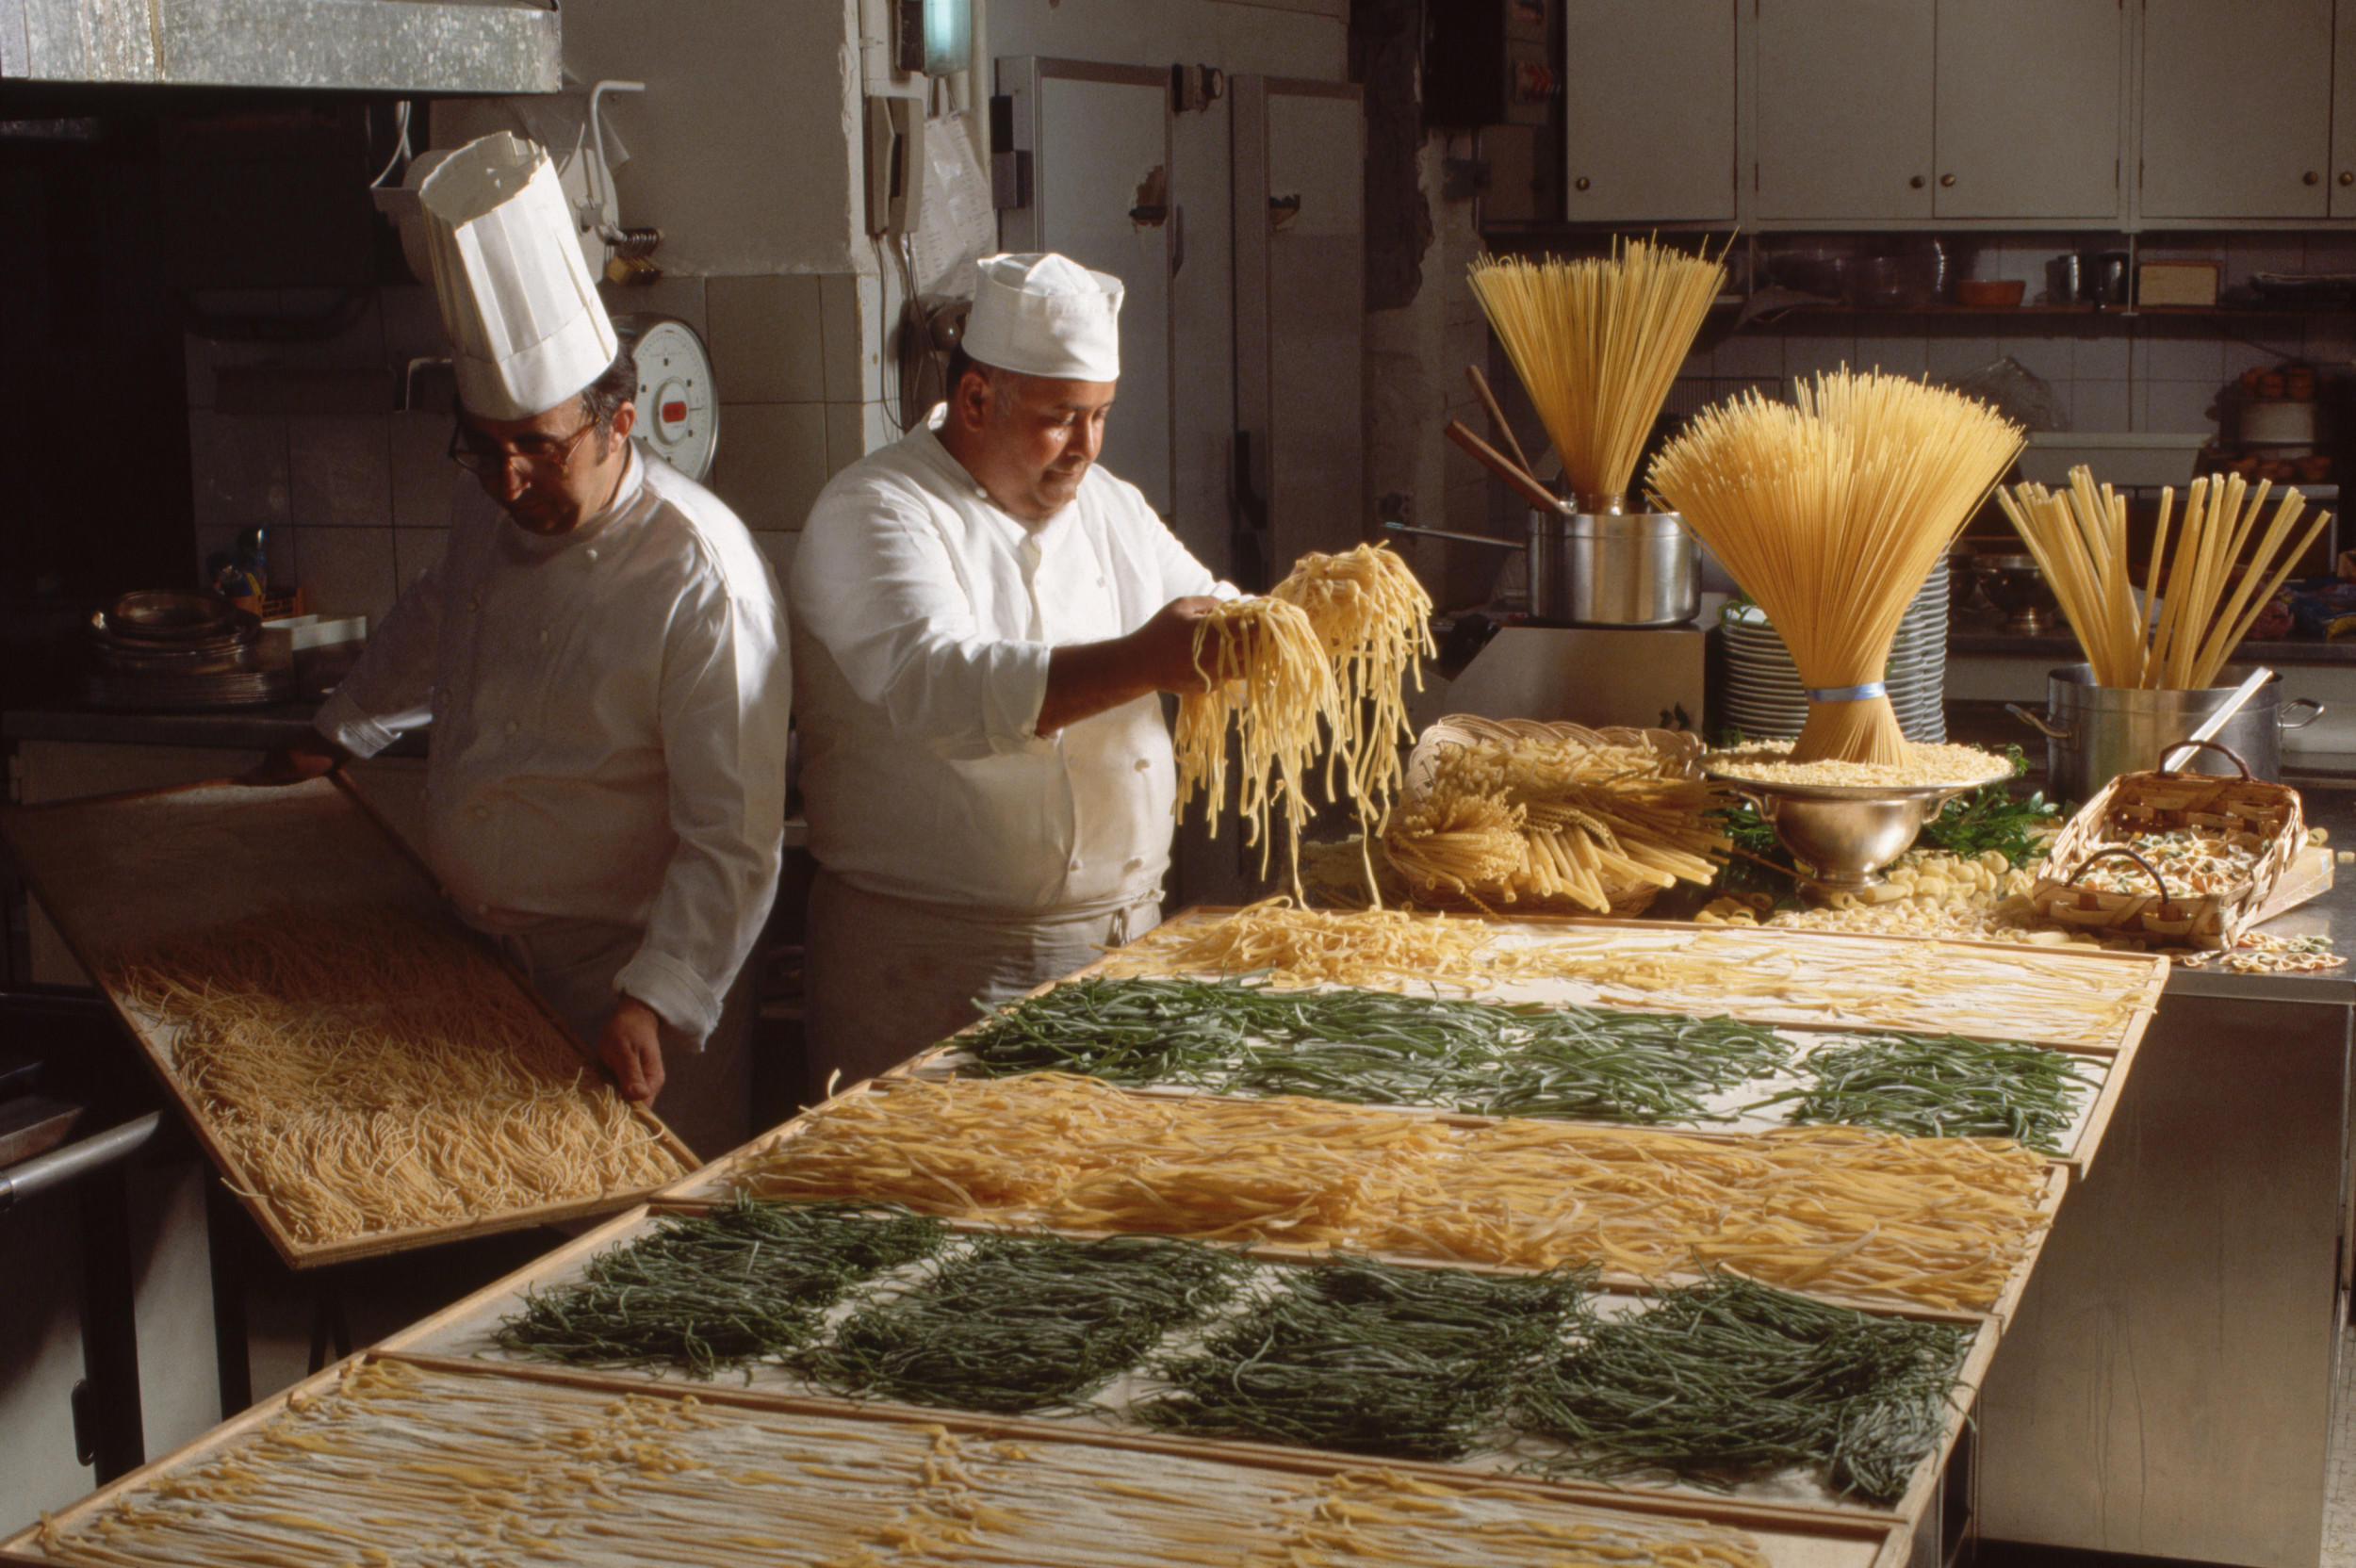 National Pasta Day 2019: How to Get Free and Cheap Pasta ...